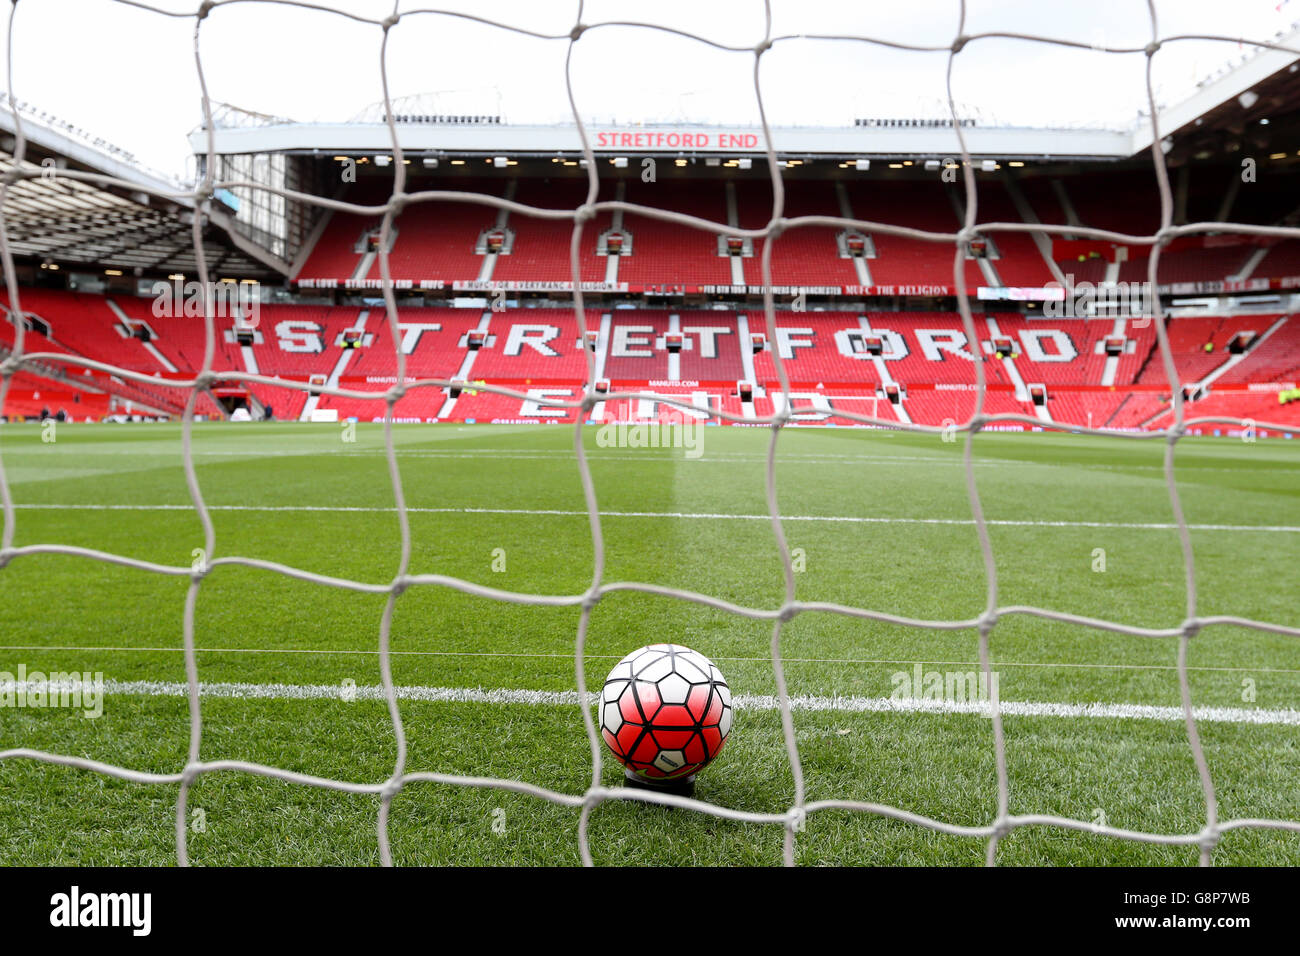 Manchester United v Arsenal - Barclays Premier League - Old Trafford - Stock Image